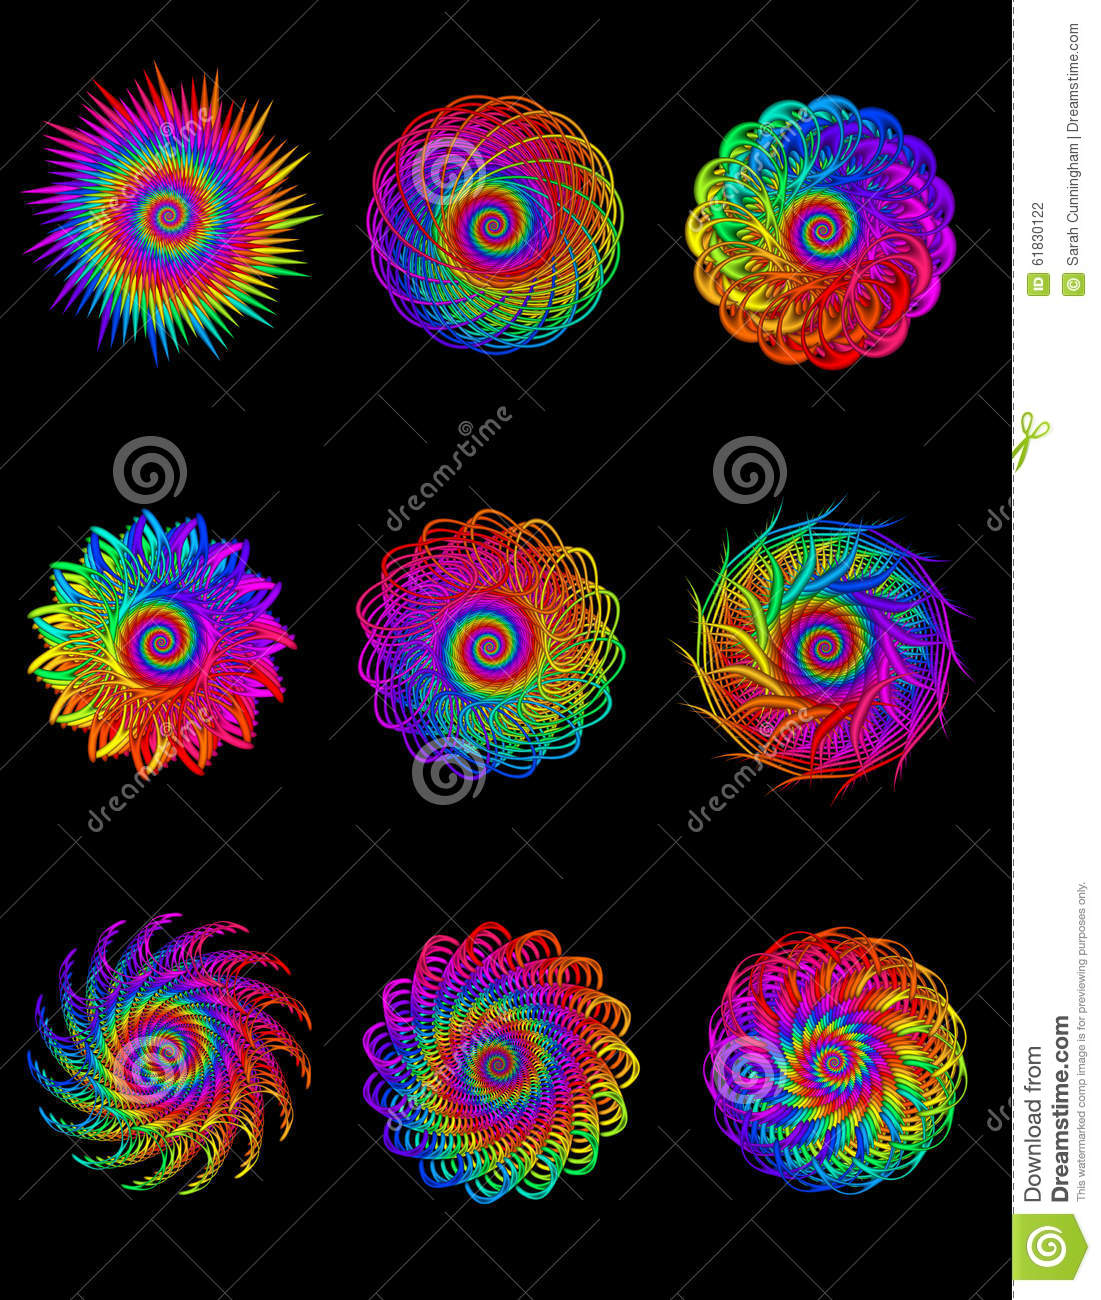 Collection Digital Art Abstract Rainbow Spiral Motifs